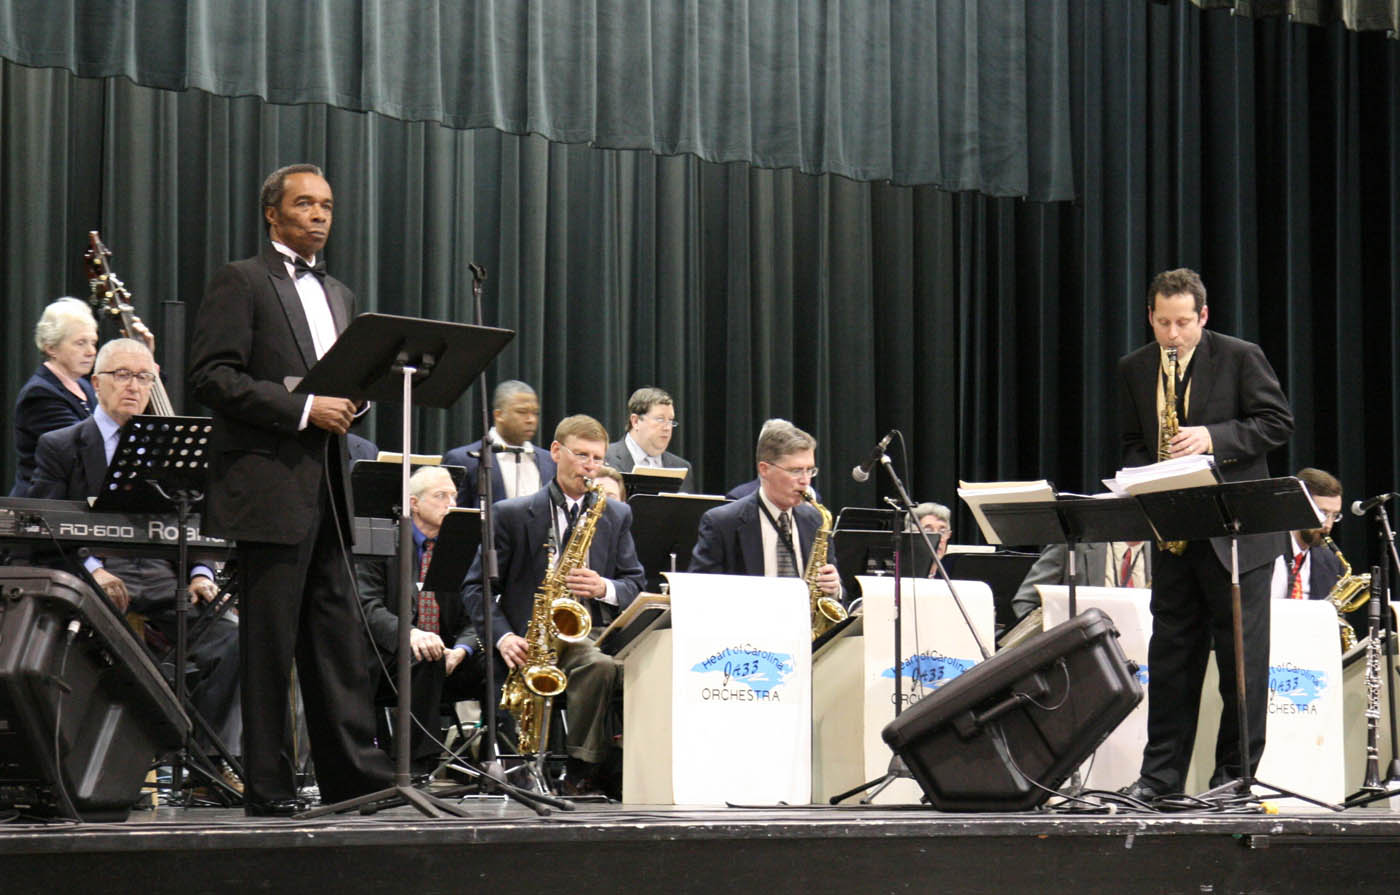 Central Carolina C.C. hosts Heart of Carolina Jazz concert